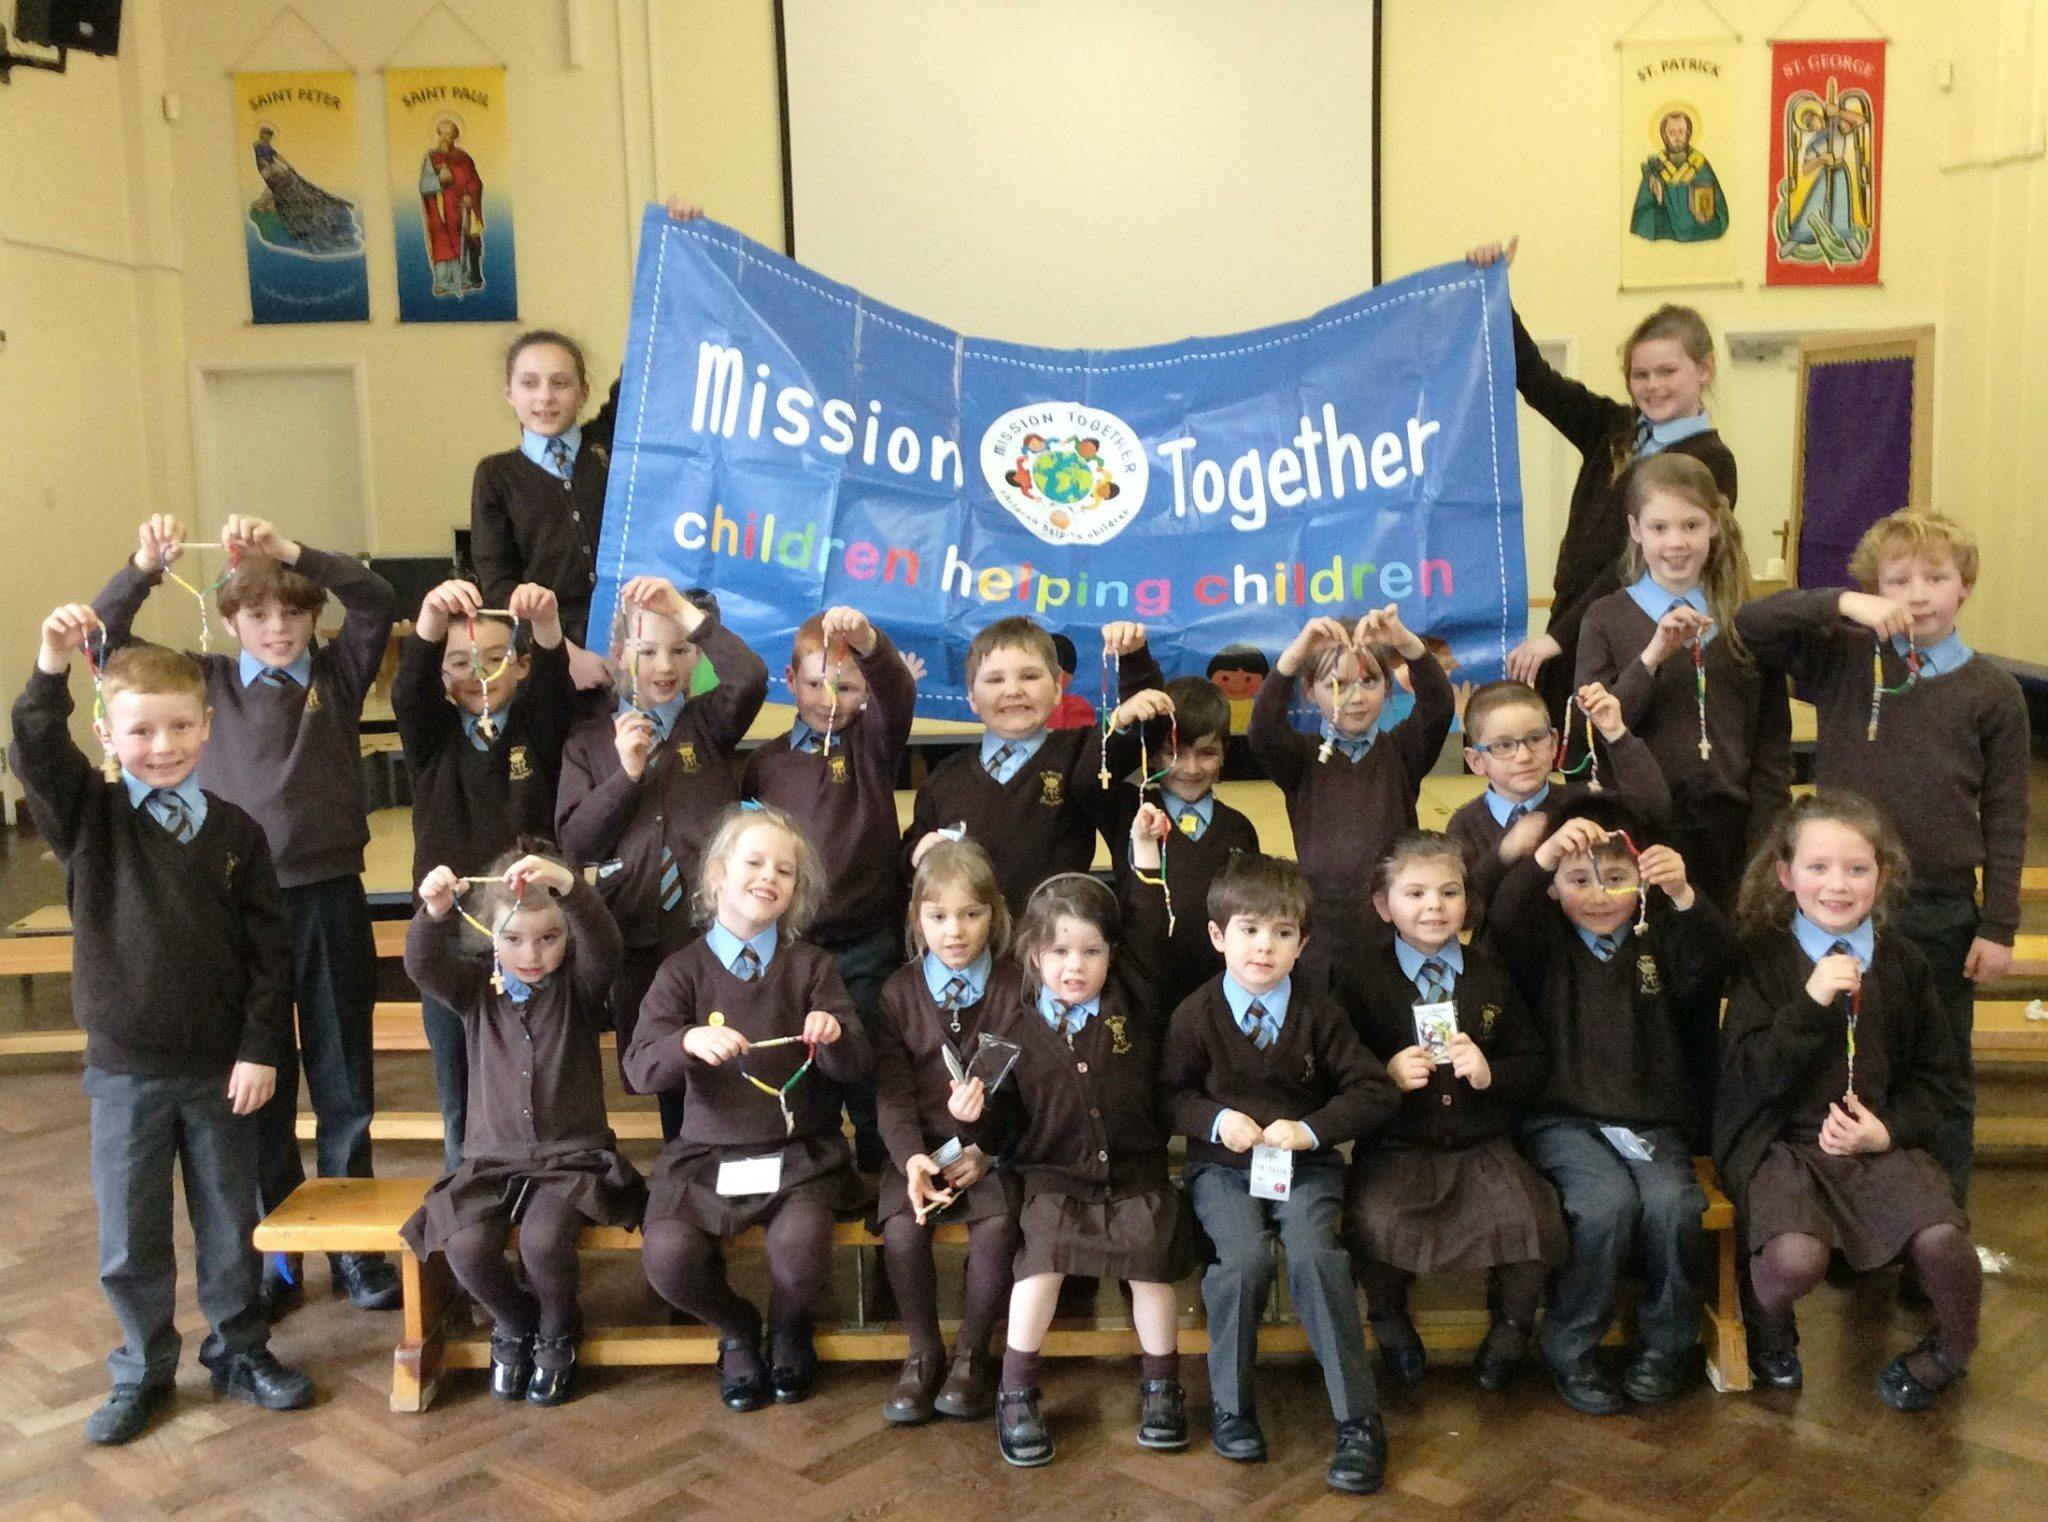 Children from St Mary's, Chingford with a Mission Together banner